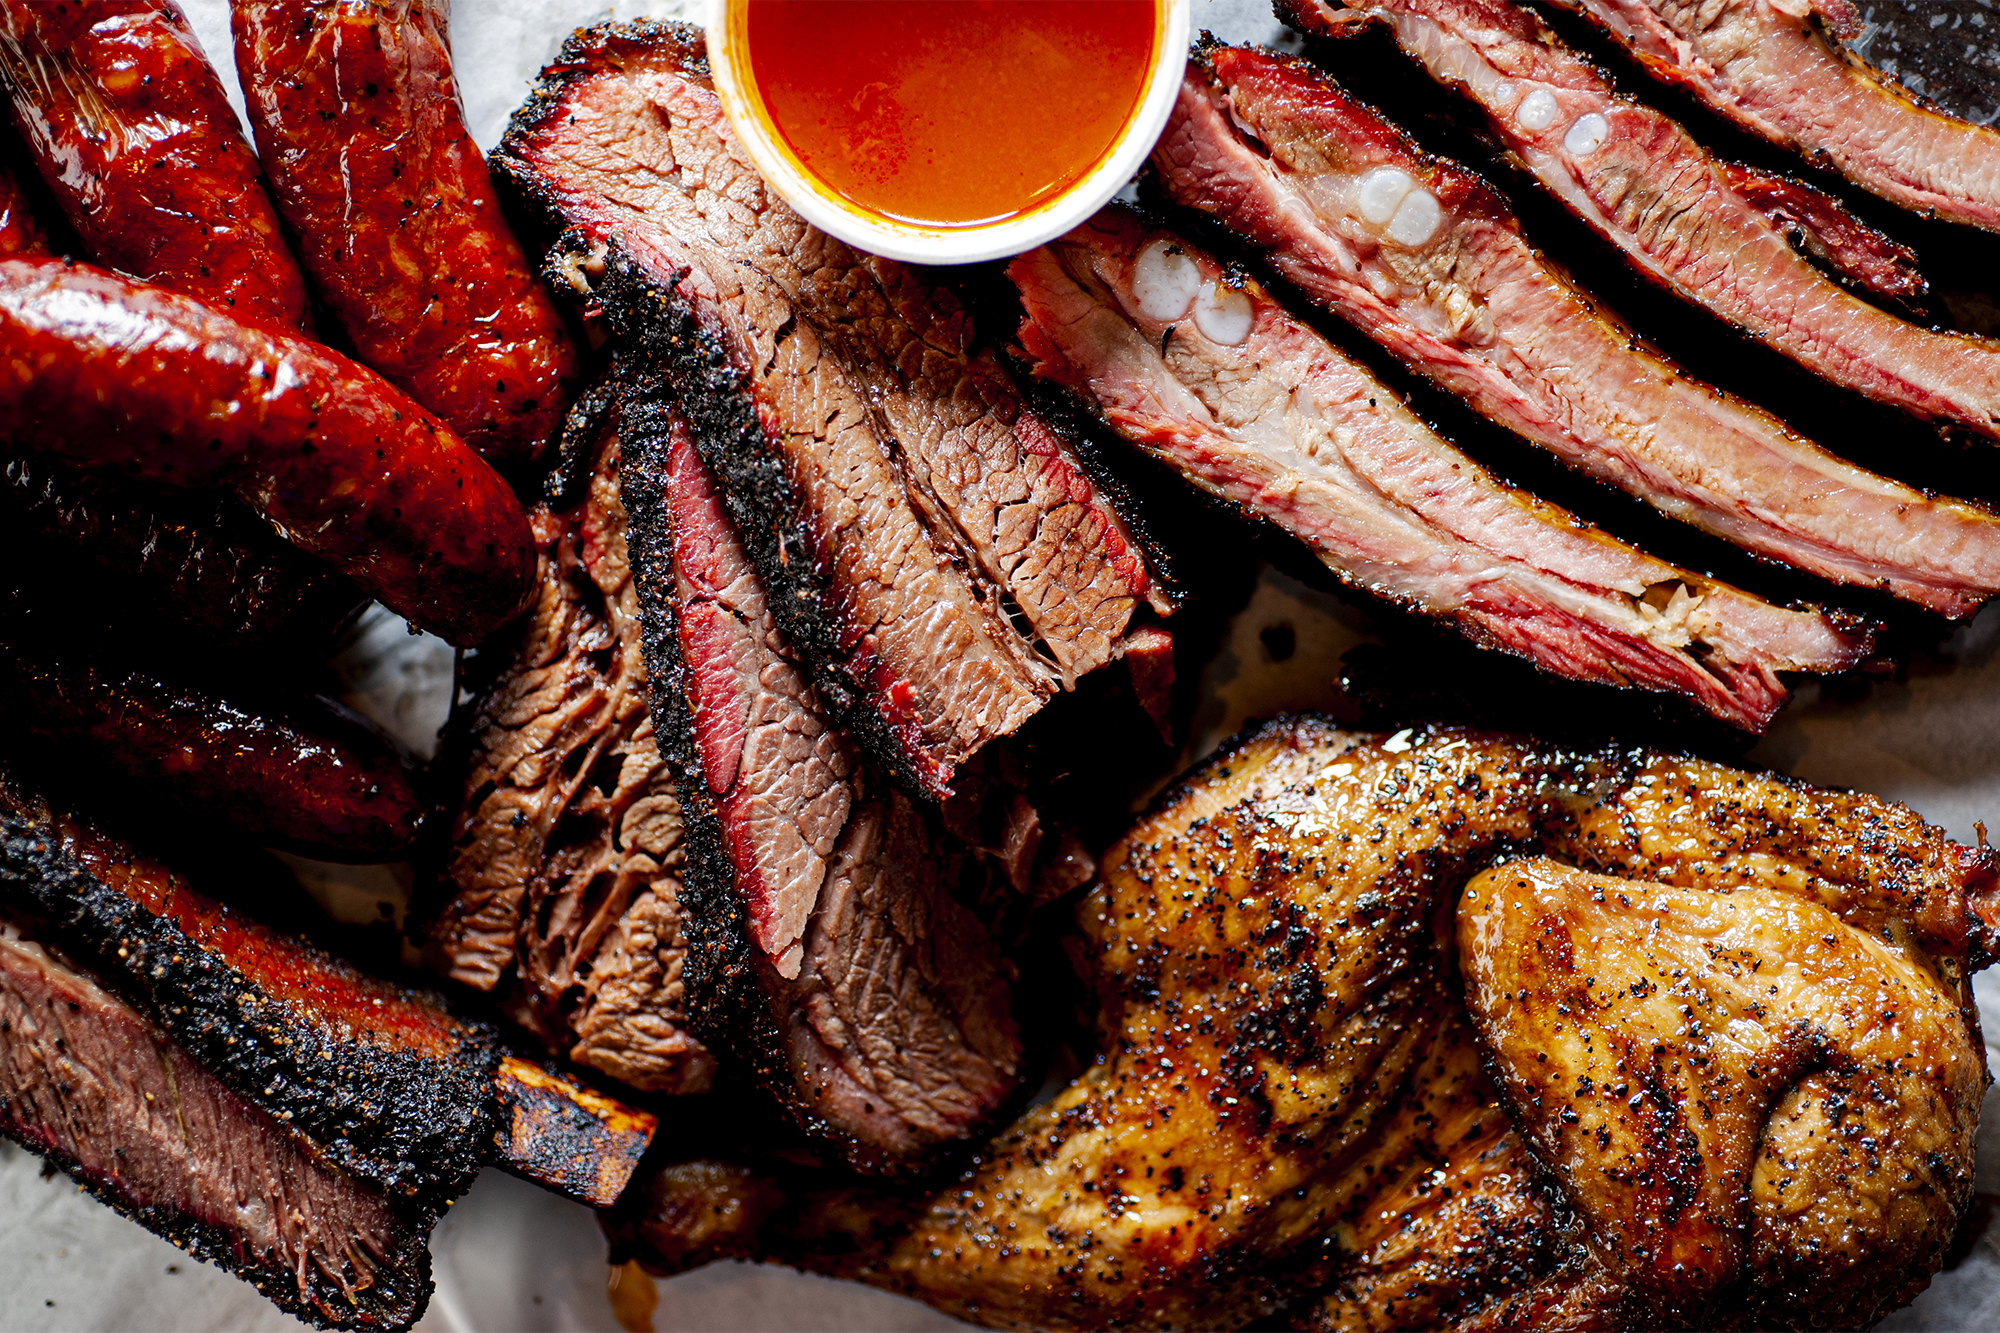 array of barbequed meats: ribs, sausages, brisket, and chicken